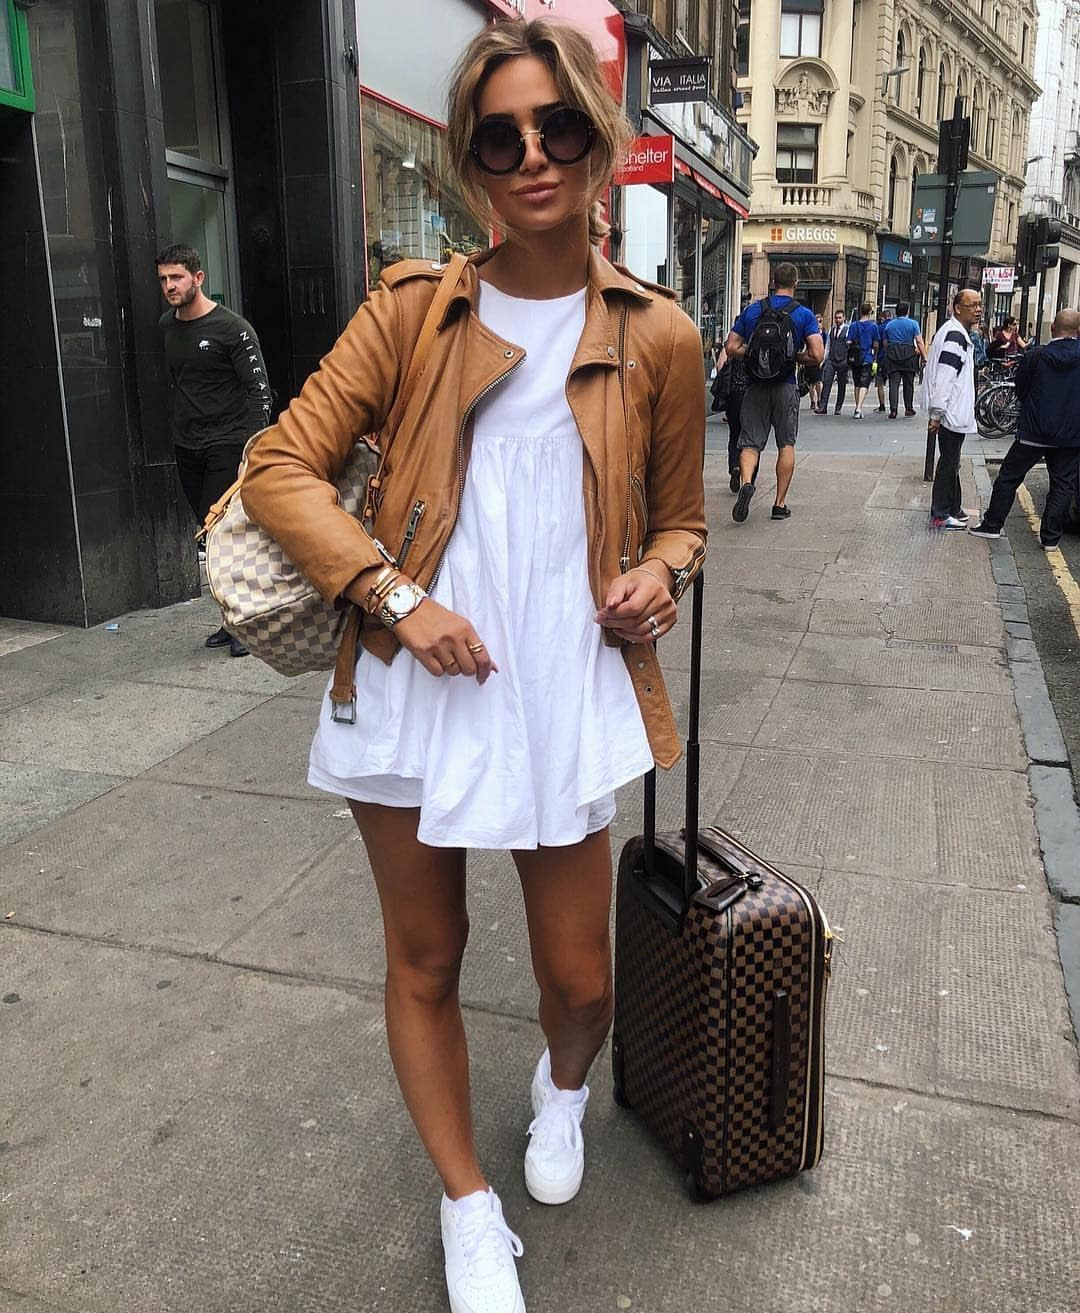 Summer Traveling OOTD: Brown Leather Jacket, White Tunic, White Shorts And Kicks 2020